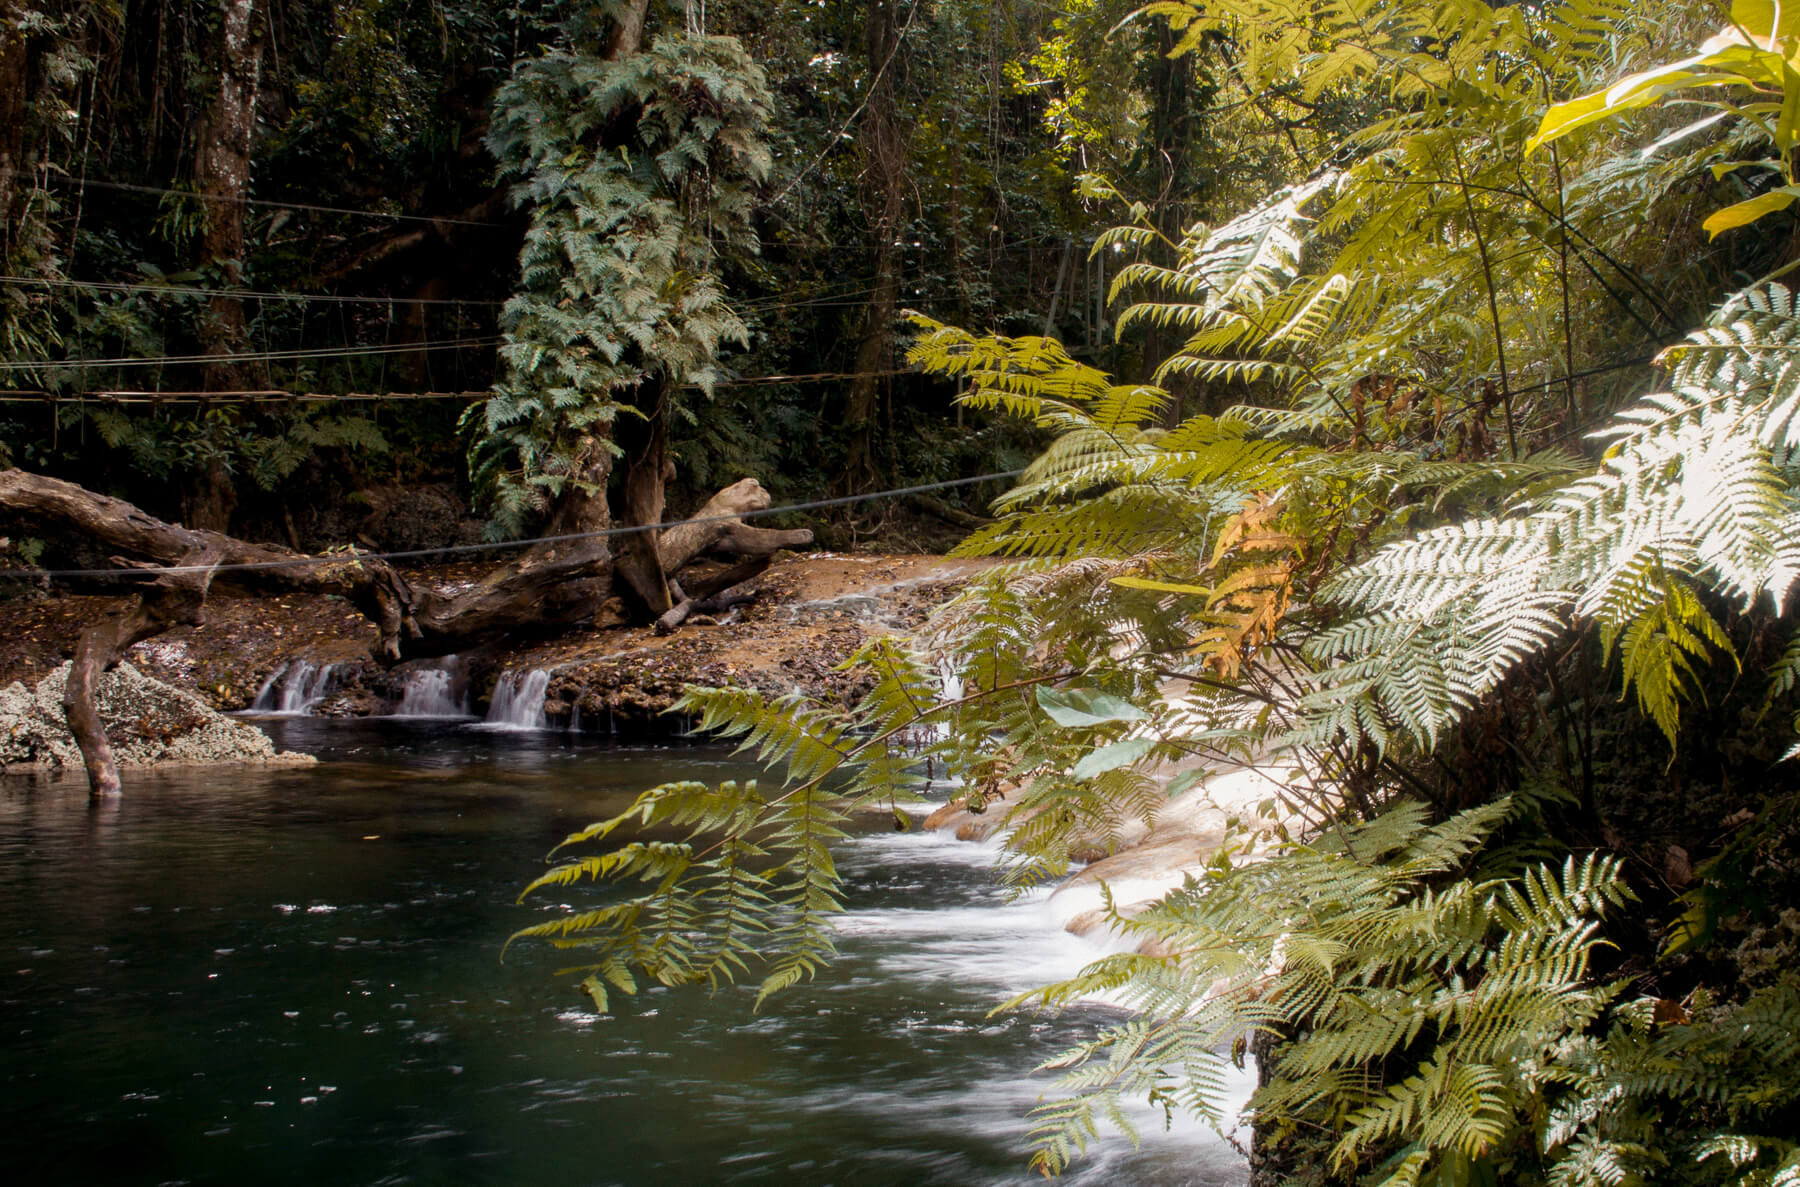 An image of a swimming hole in the forest of Vanuatu ' Eden on the River '